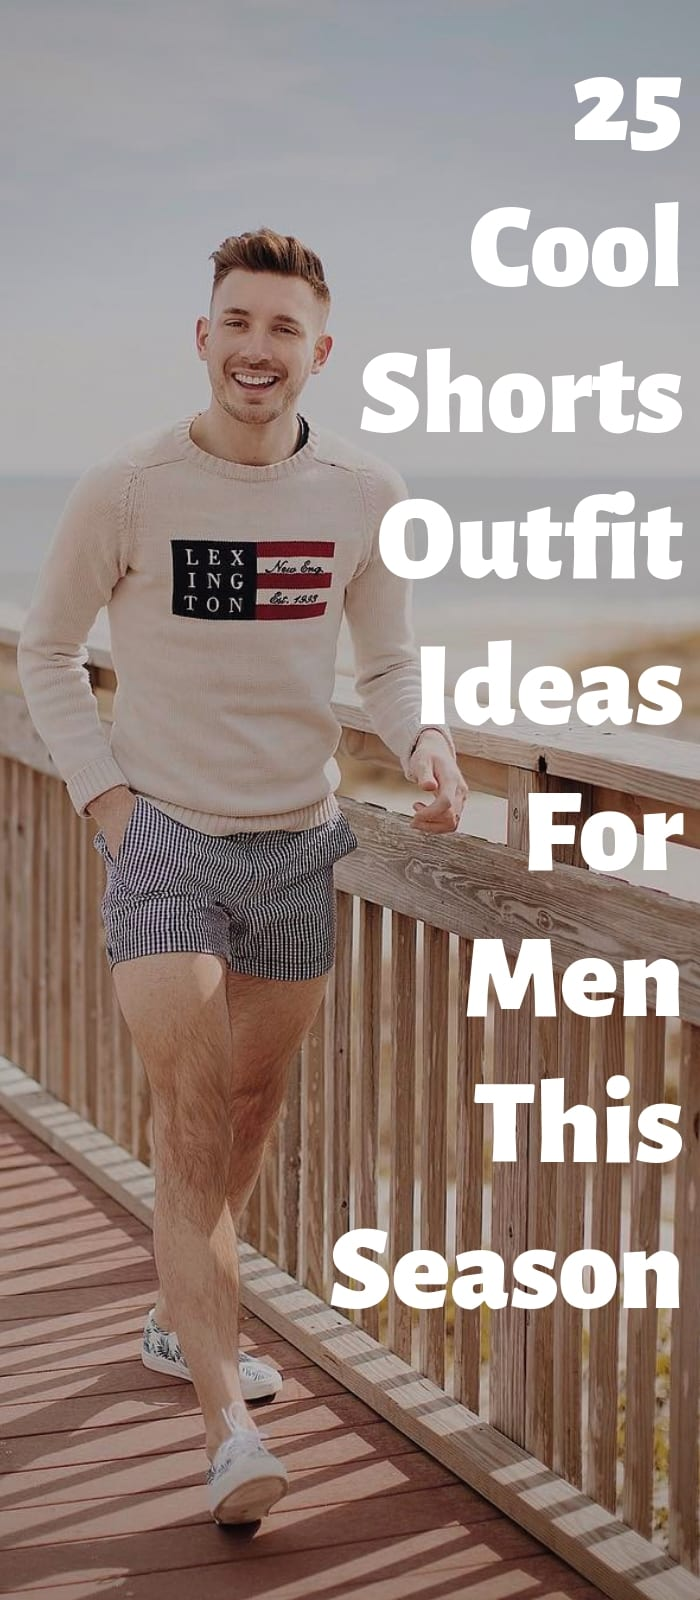 25 Cool Shorts Outfit Ideas For Men This Season (1)